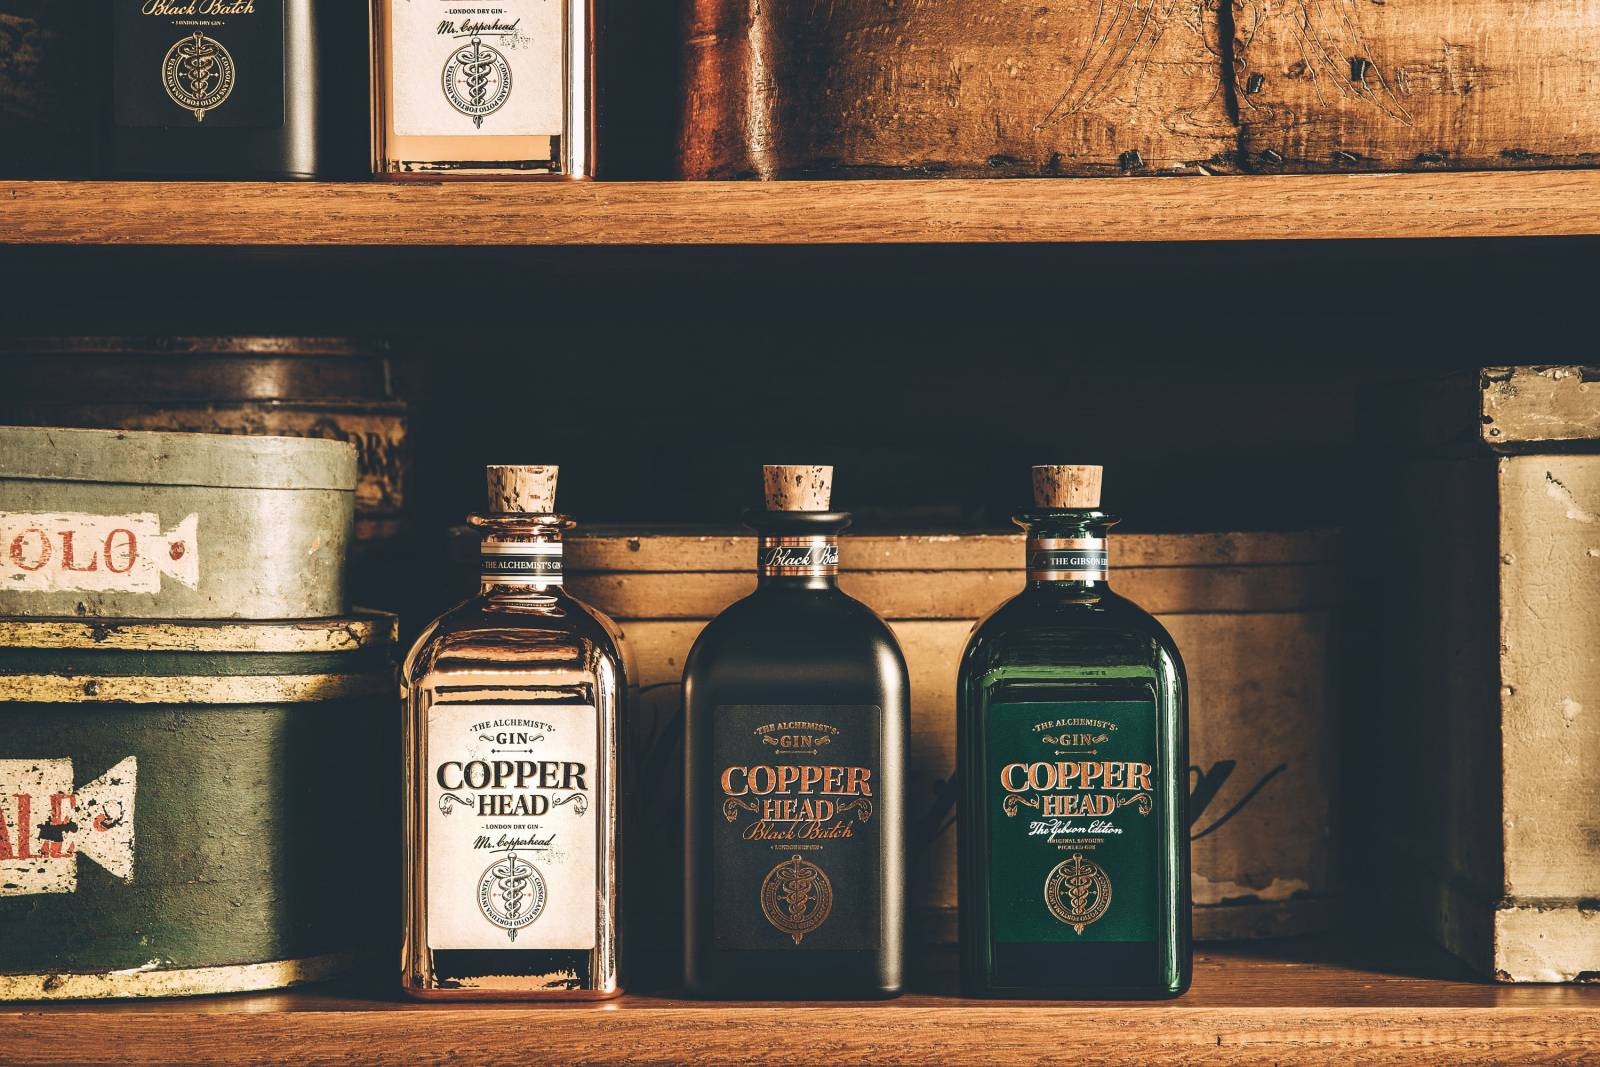 Copperhead Gin - House of Weddings  - 3